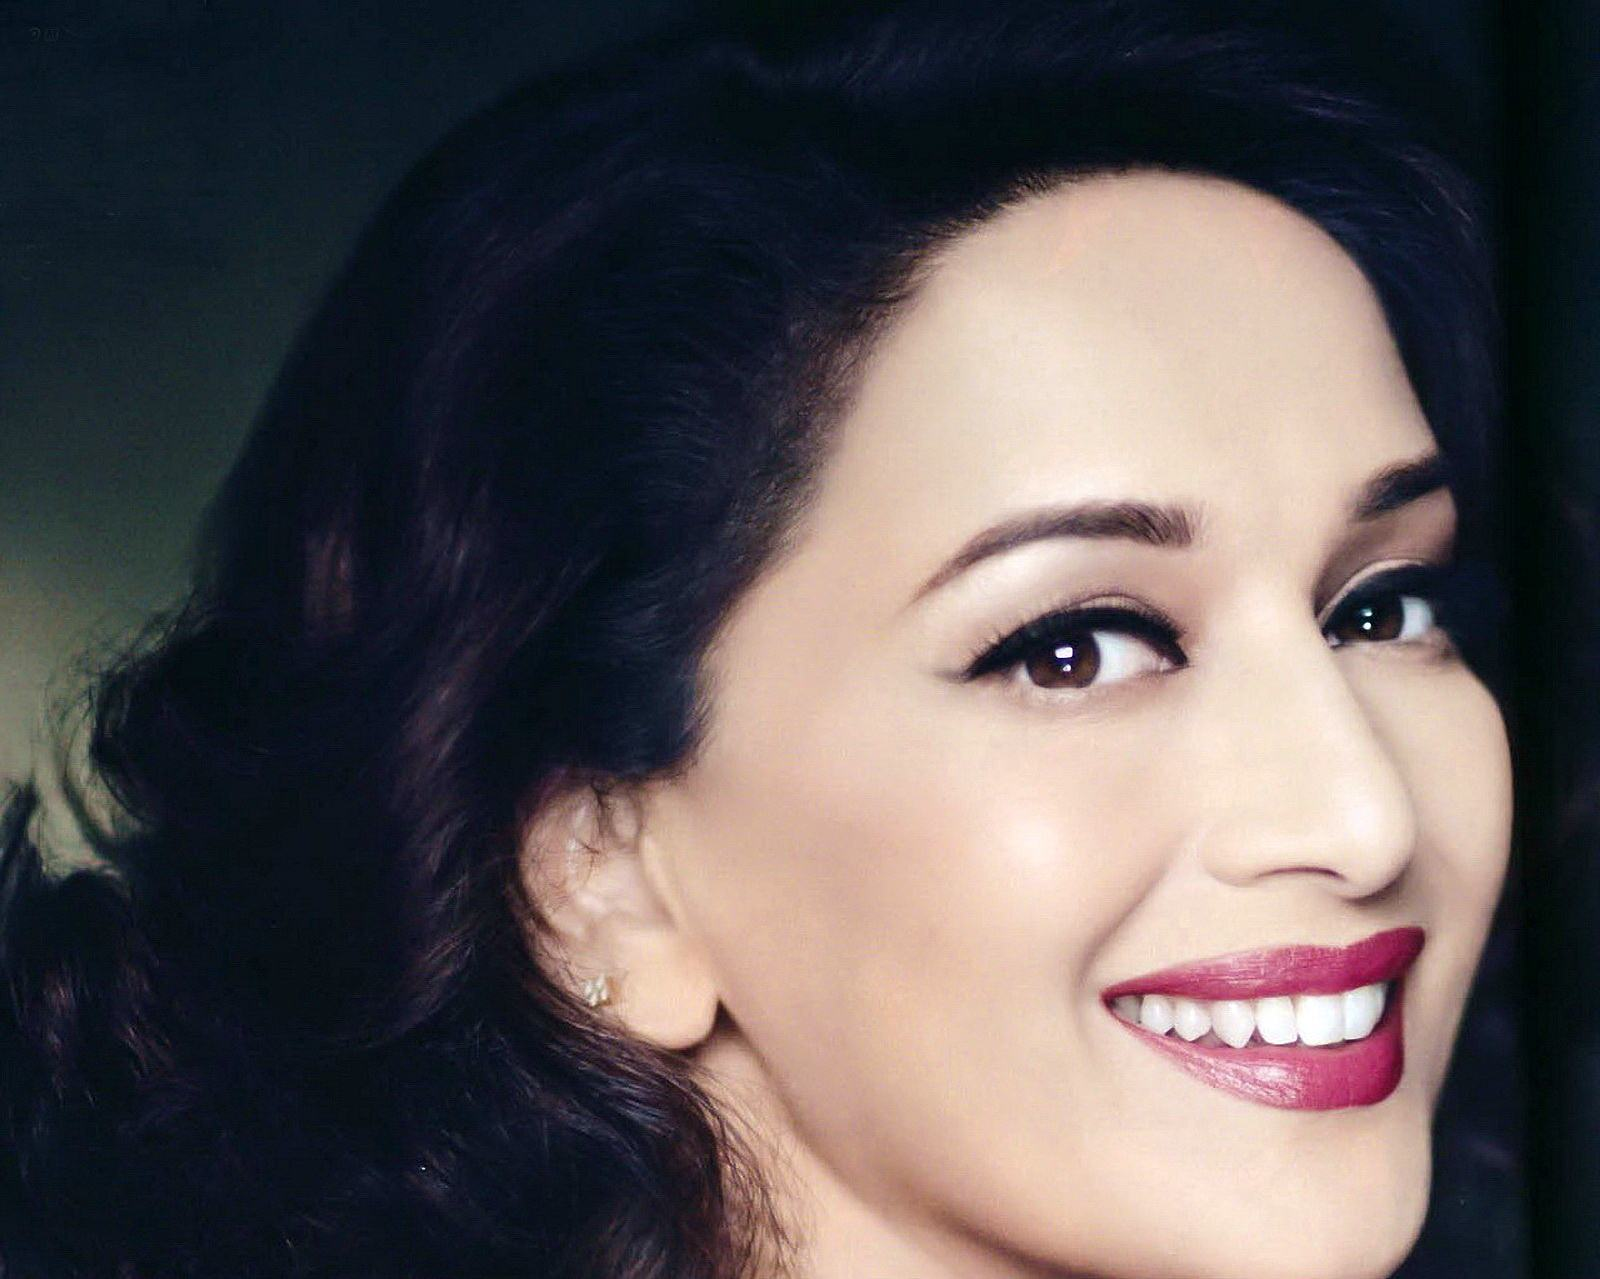 Madhuri Dixit Wallpapers High Resolution and Quality Download